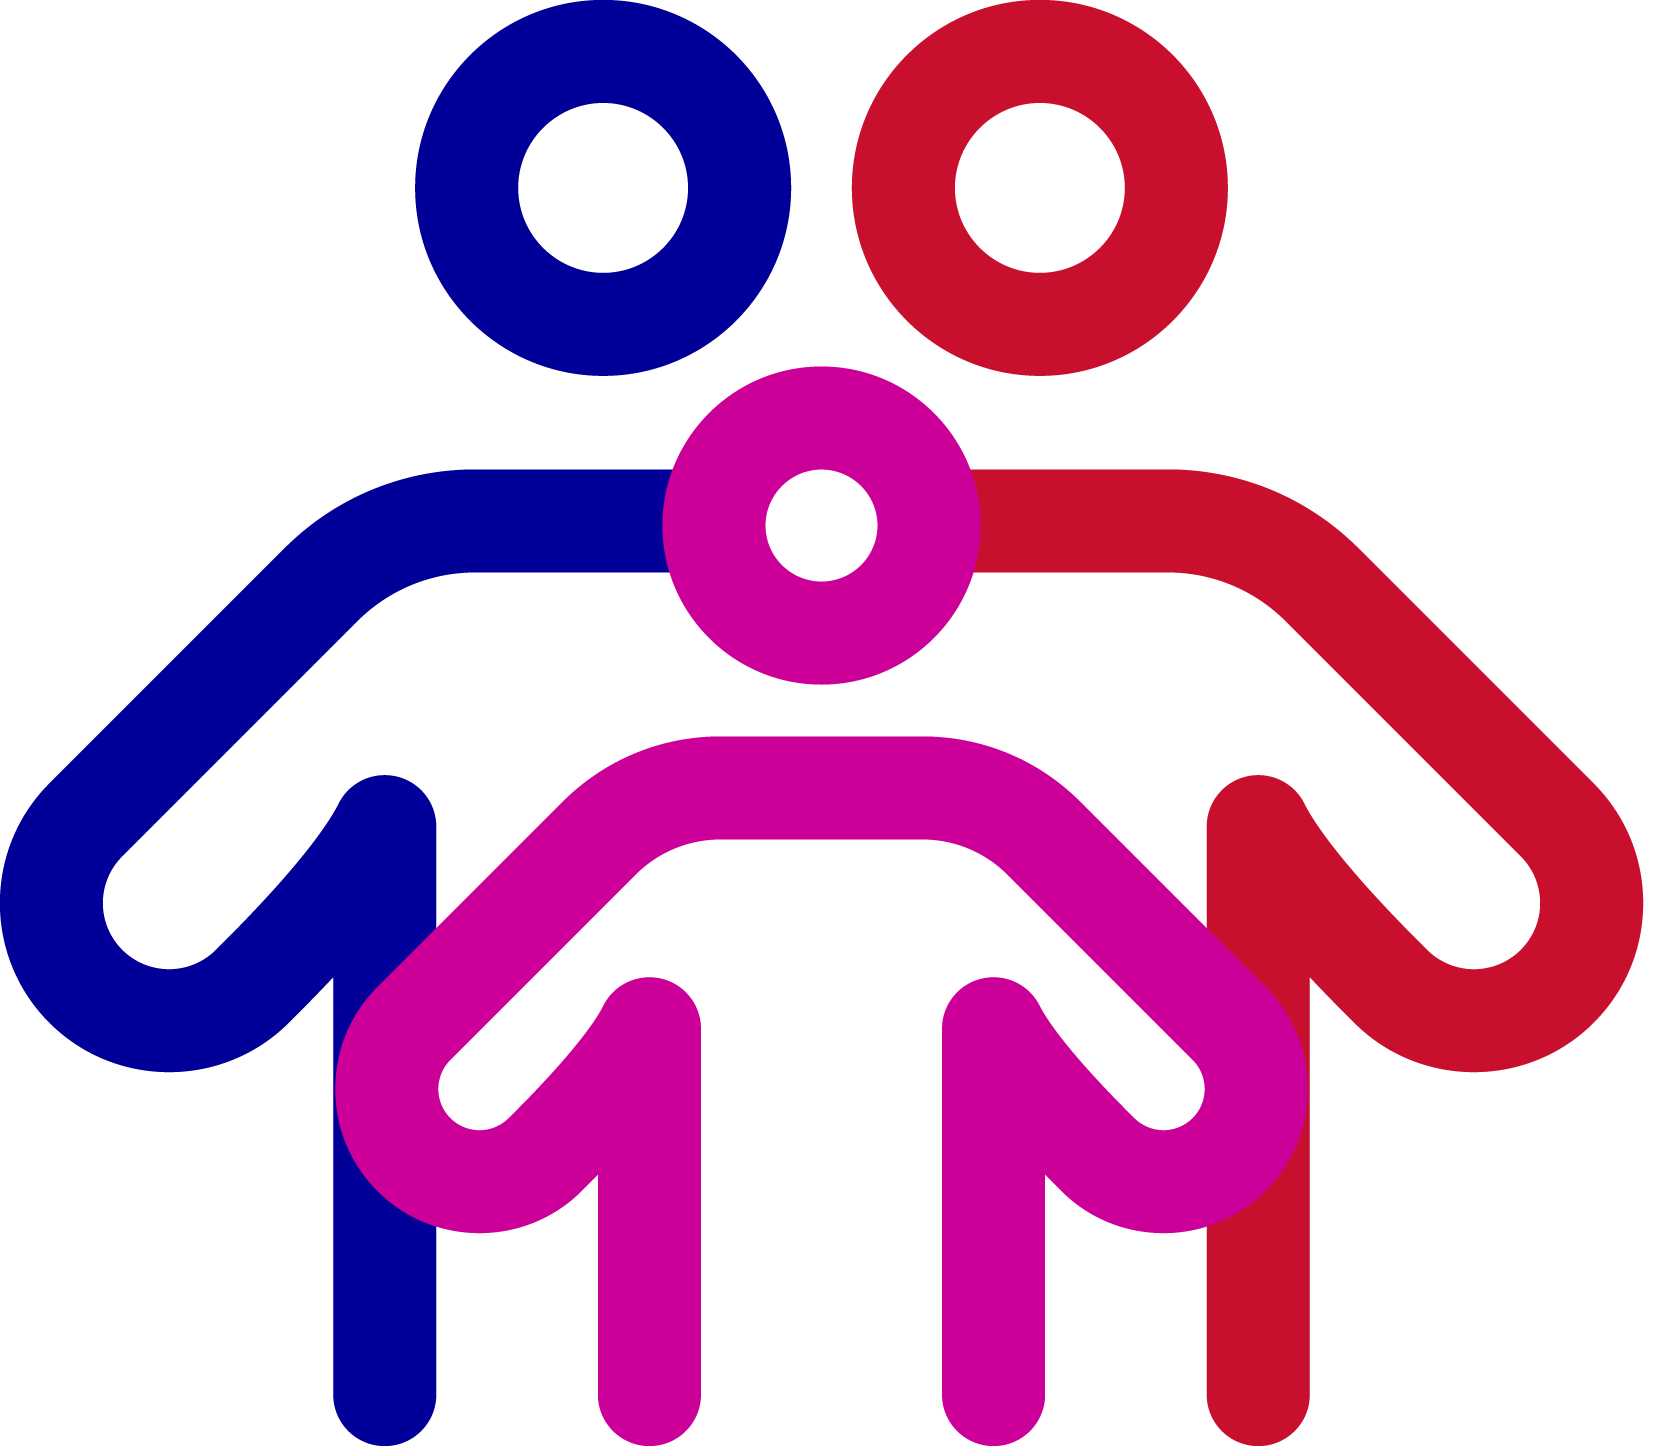 jj-icon-people-family-multi-rgbpng-jnjiconpeoplefamilymultimultirgb.png